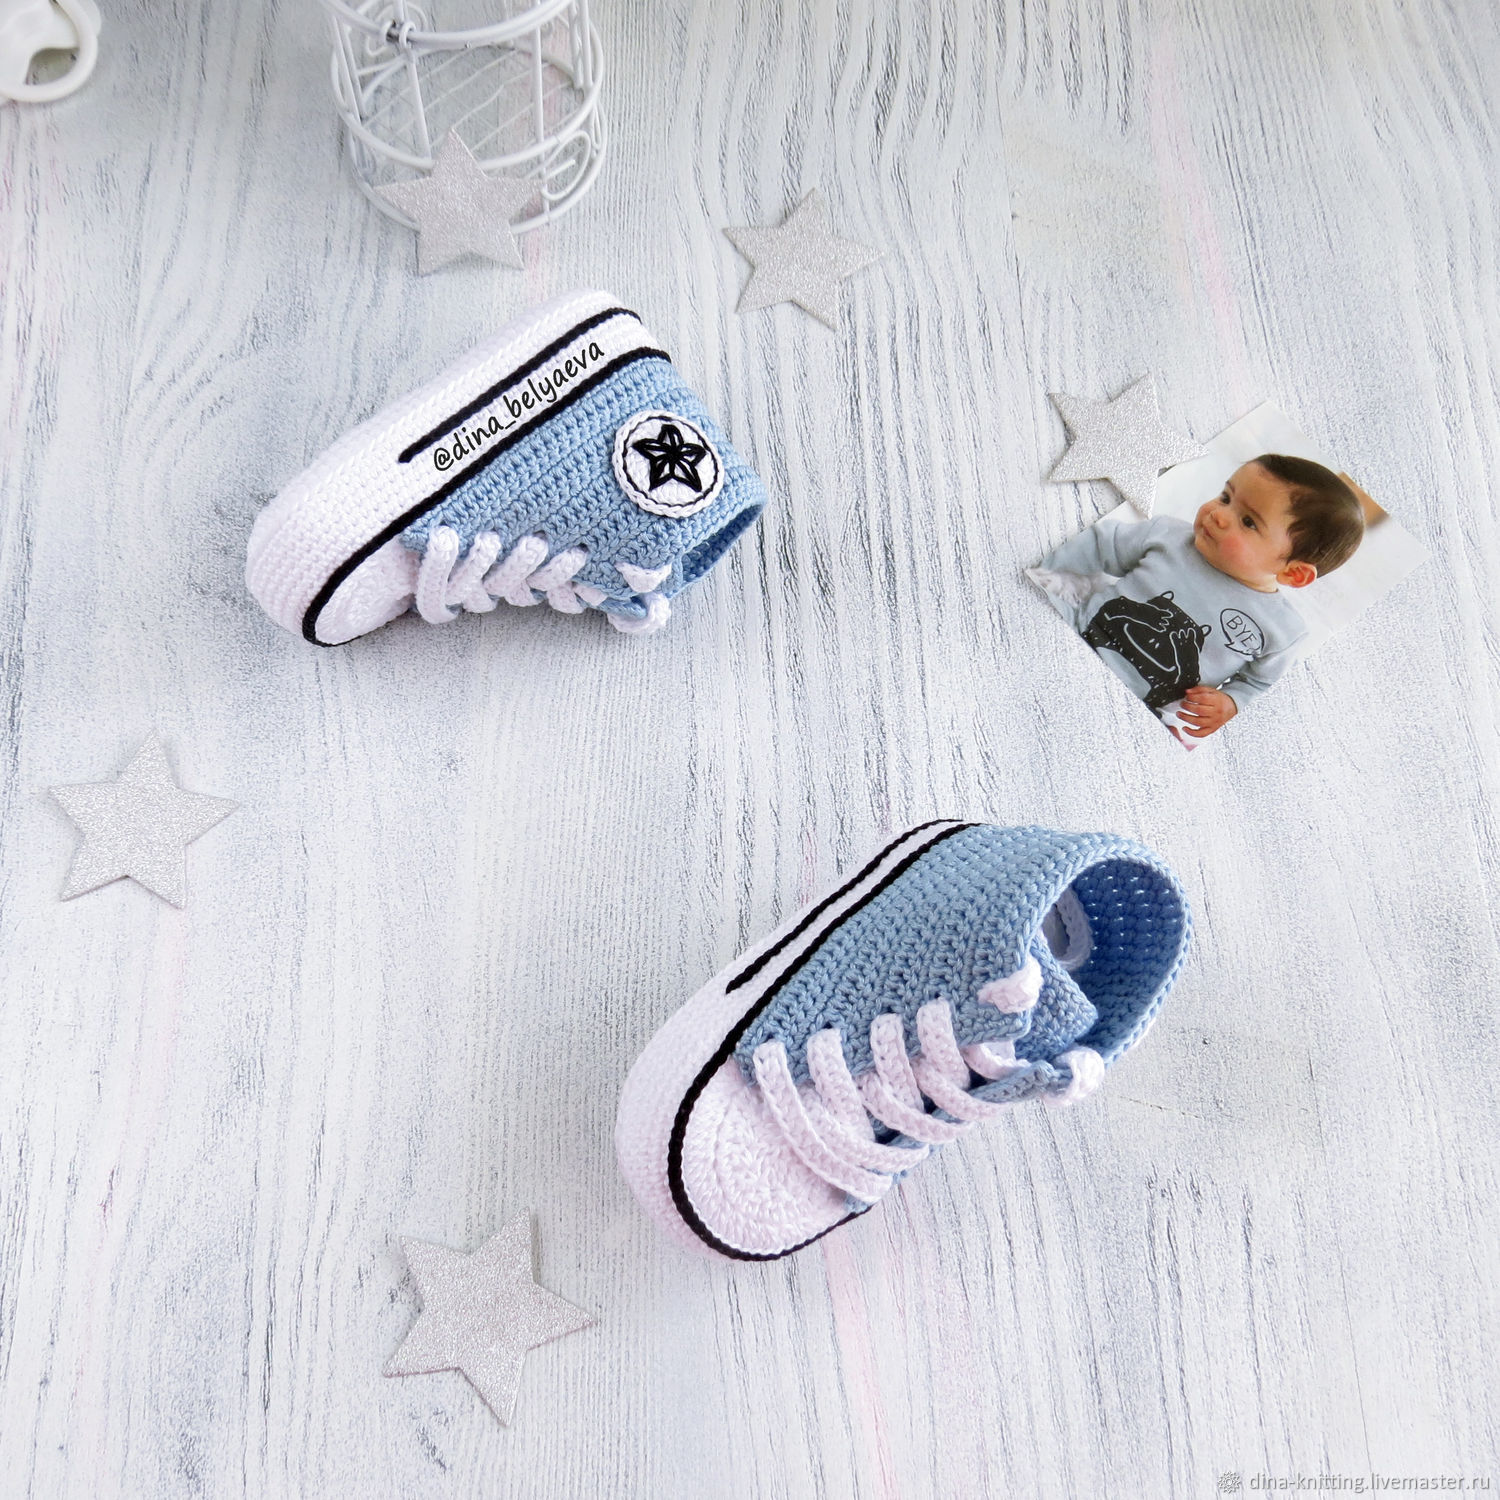 booties shoes, knitted, for girls, knitted shoes for boy baby girl's knitted chucks, converse booties, knitted baby booties sneakers to buy, baby booties, buy baby booties, buy baby buy